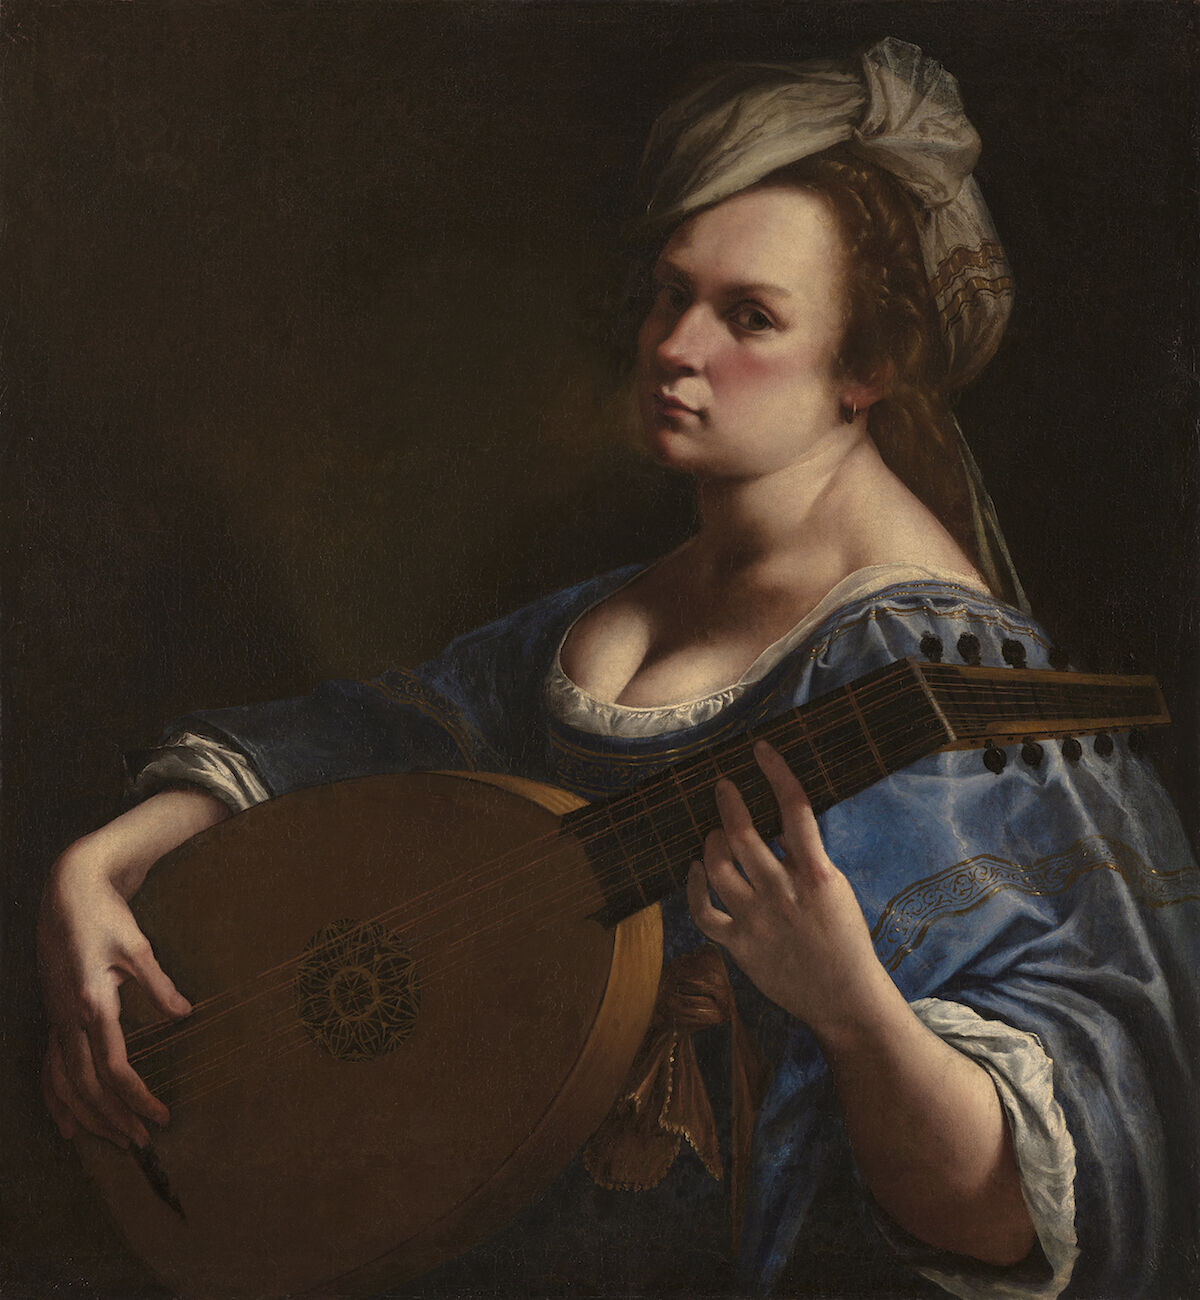 Artemisia Gentileschi, Self Portrait as a Lute Player, ca. 1615–18. Wadsworth Atheneum Museum of Art, Hartford, Connecticut. © Wadsworth Atheneum Museum of Art, Hartford, Connecticut.